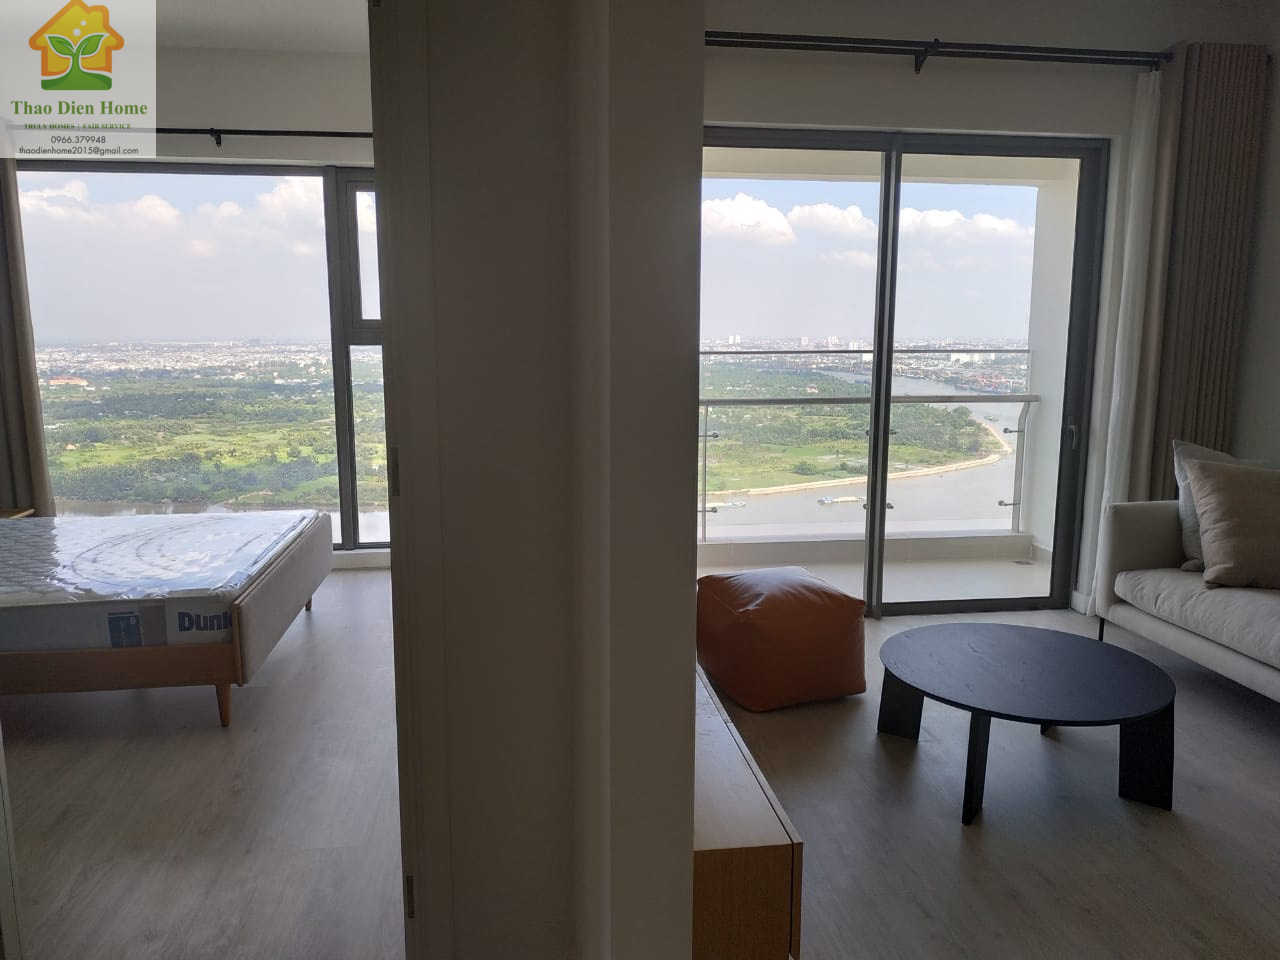 Gateway Thao Dien, Stunning River View for 2 Bedrooms Apartment